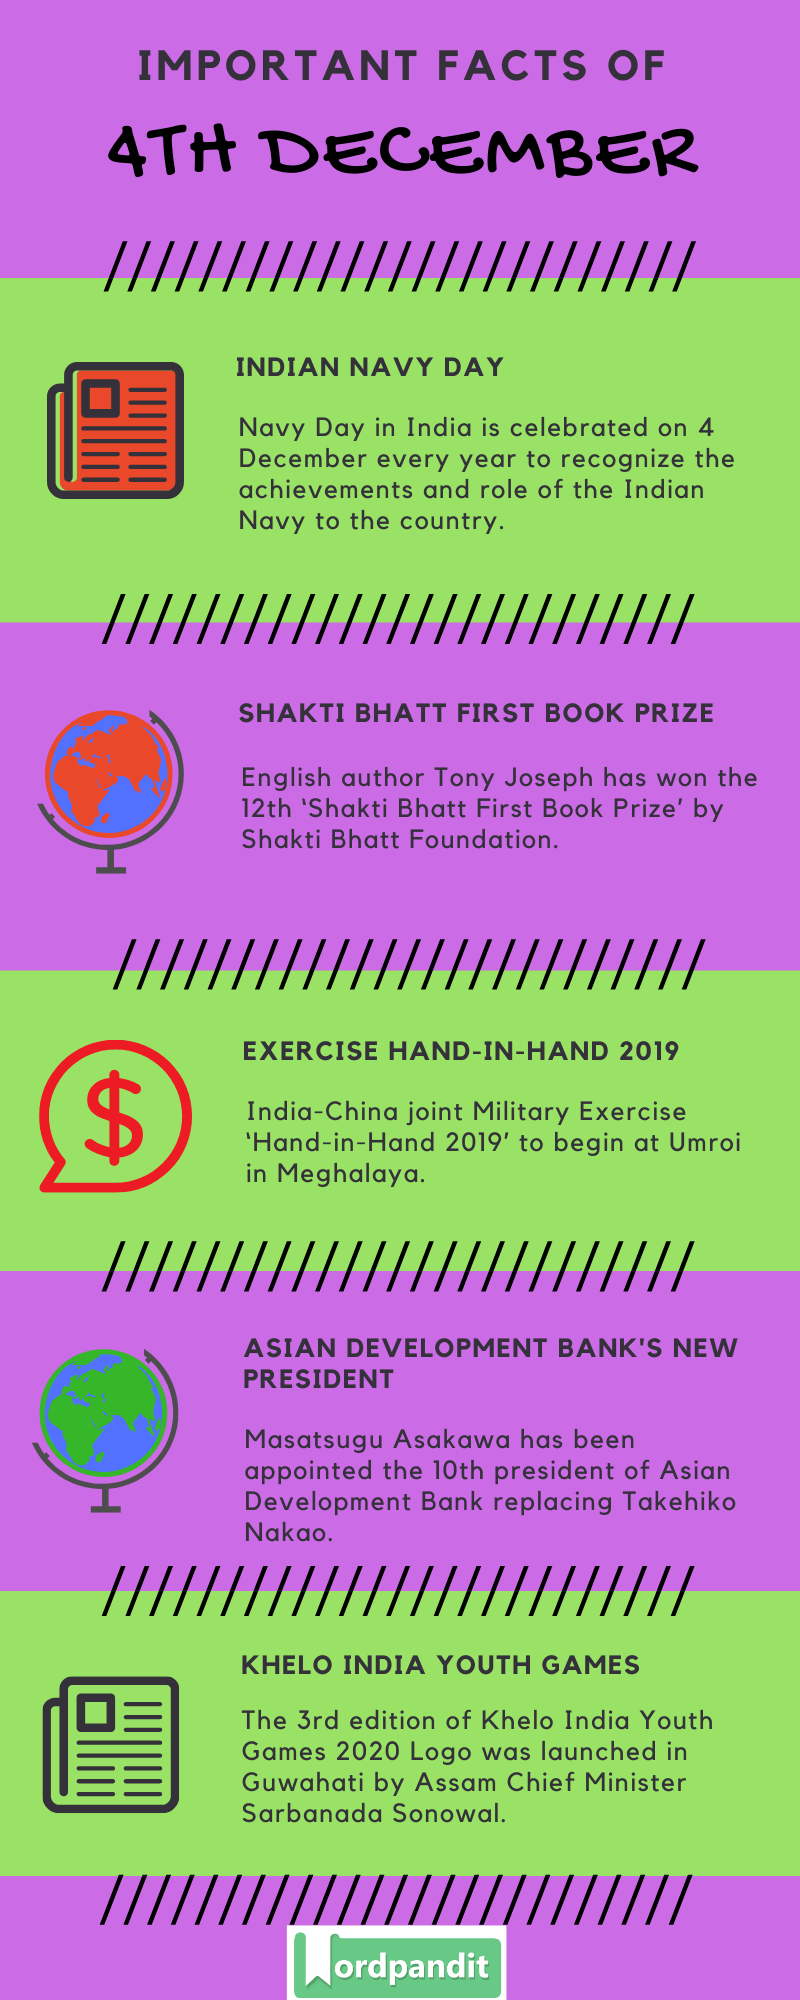 Daily Current Affairs 4 December 2019 Current Affairs Quiz 4 December 2019 Current Affairs Infographic